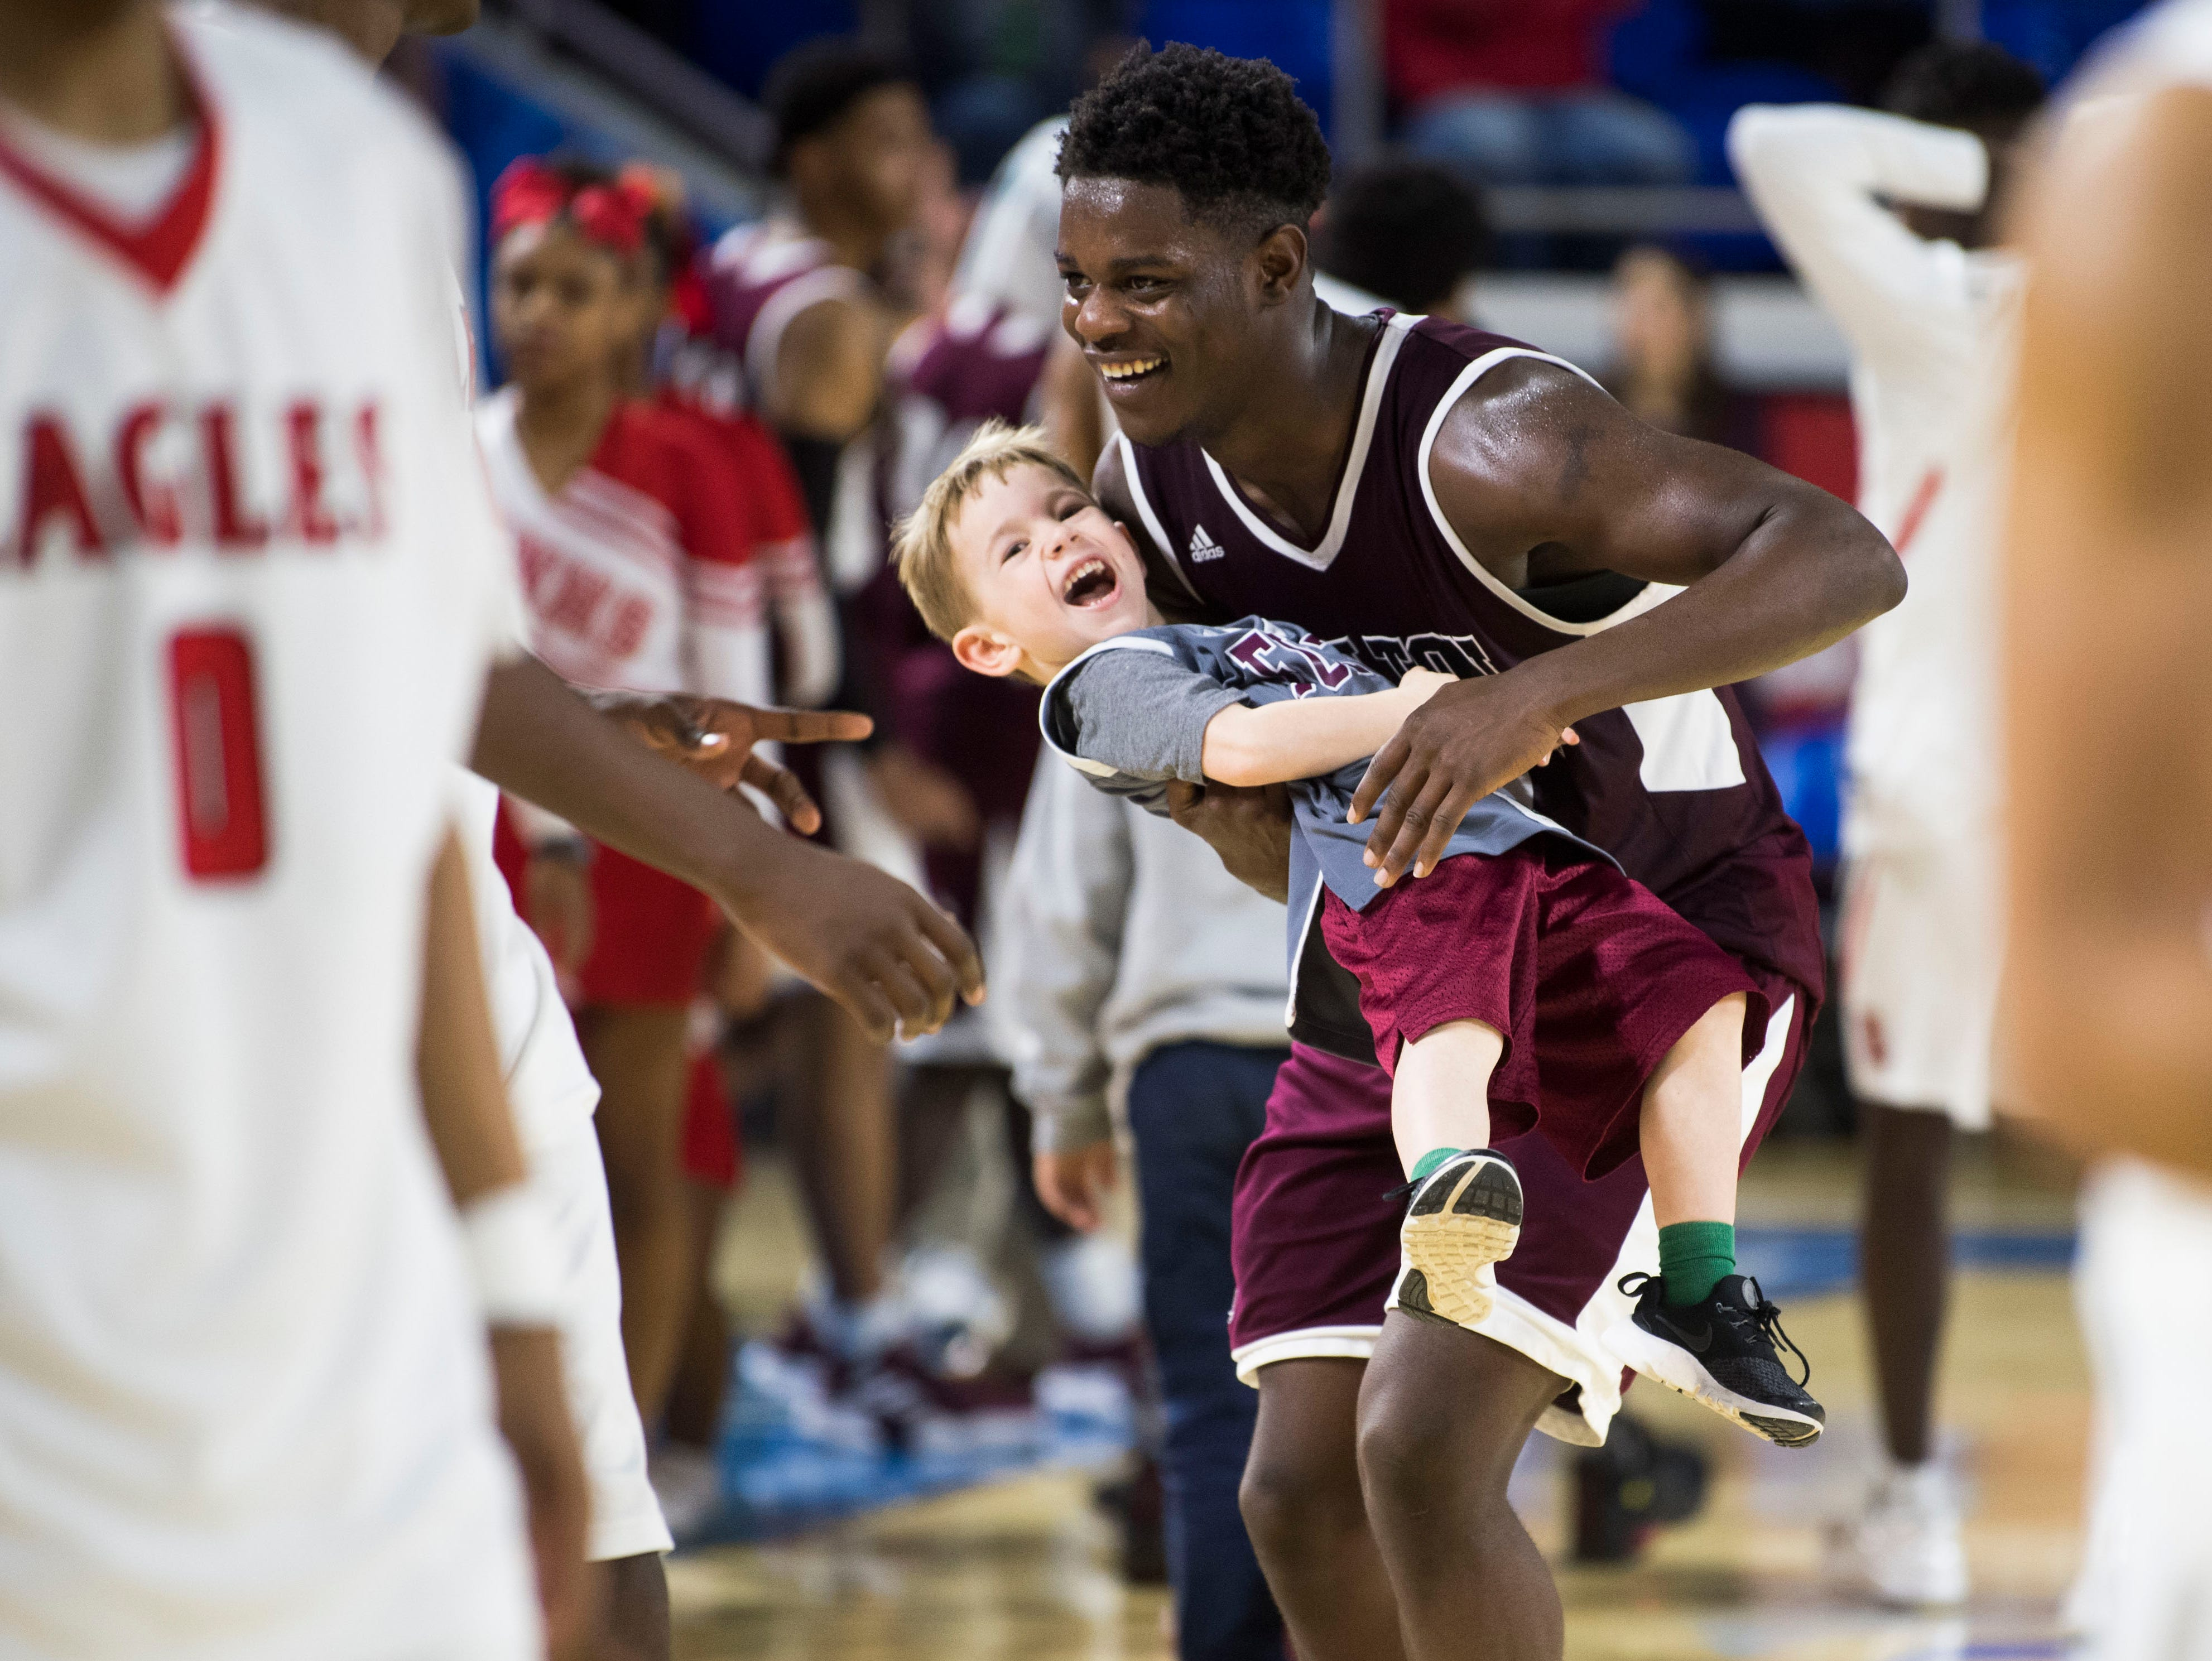 Fulton's Deshawn Page (32) picks up assistant coach Jonathan Cox's son Tatum Cox, 4, while celebrating a win after a TSSAA AA state semifinal game between East Nashville and Fulton at the Murphy Center in Murfreesboro, Friday, March 15, 2019. Fulton defeated East Nashville 66-55.